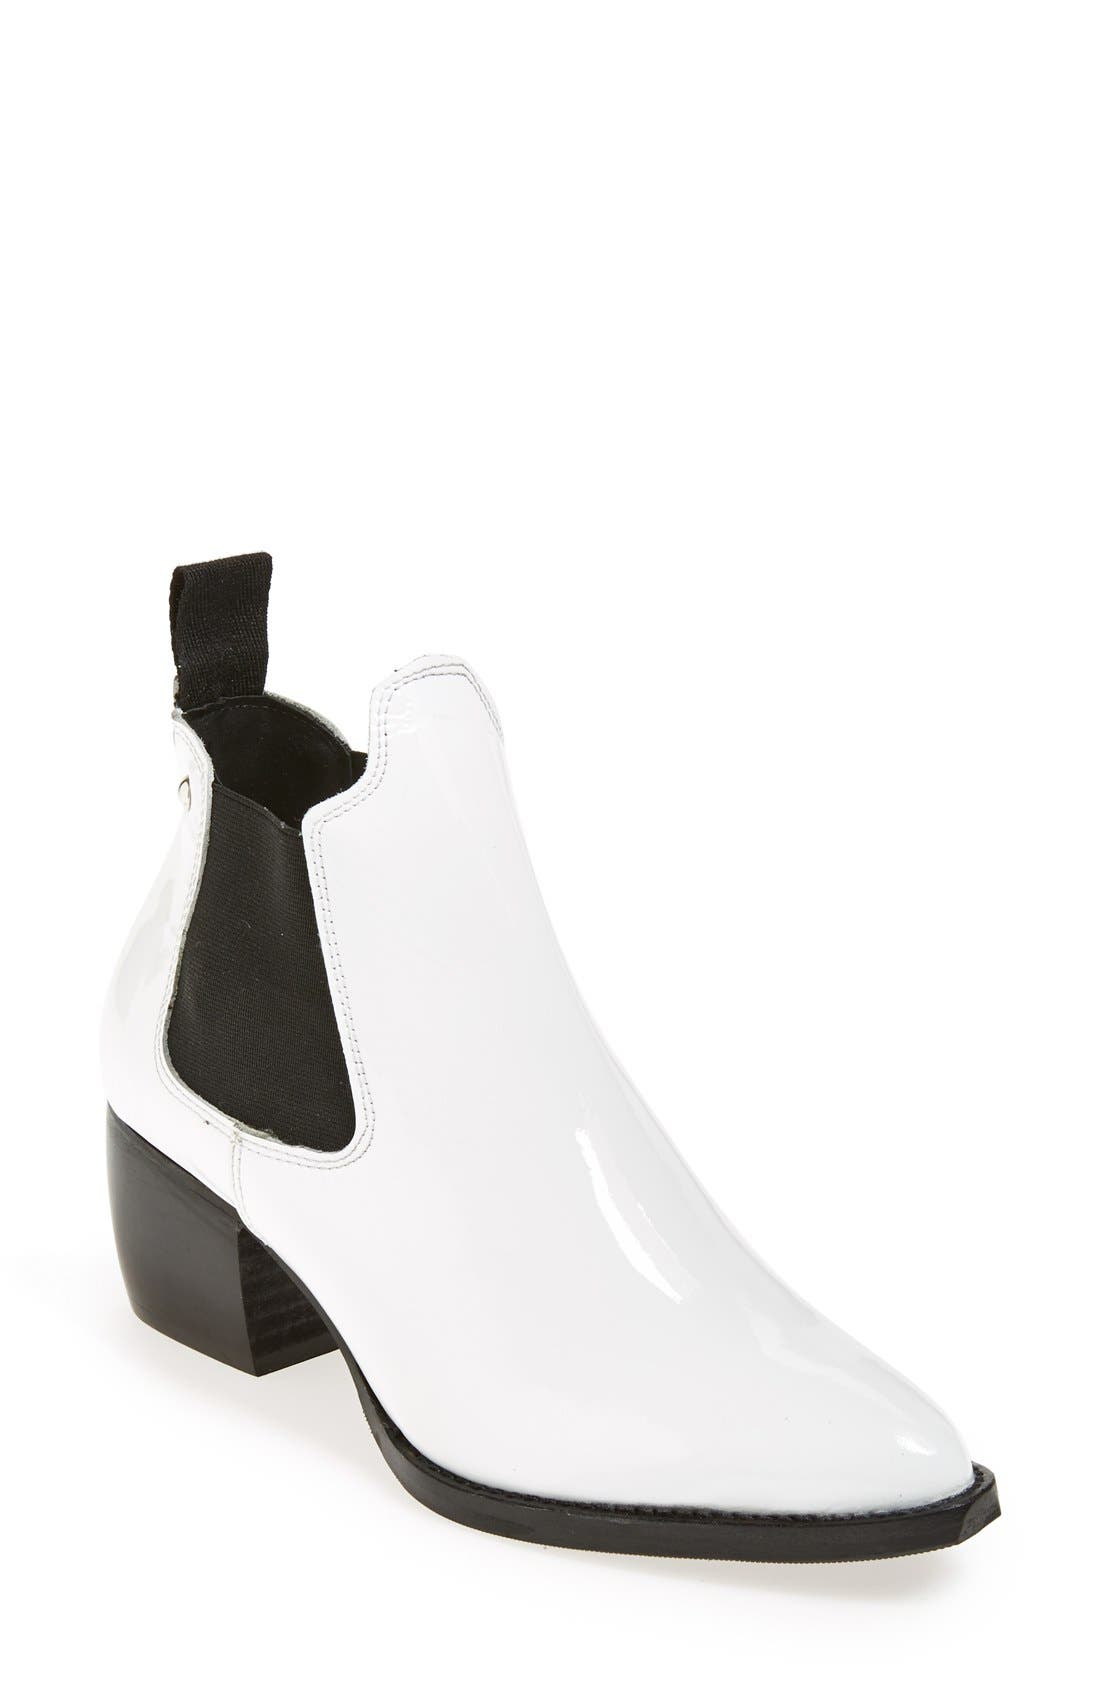 Alternate Image 1 Selected - Topshop 'Margot' Leather Ankle Bootie (Women)